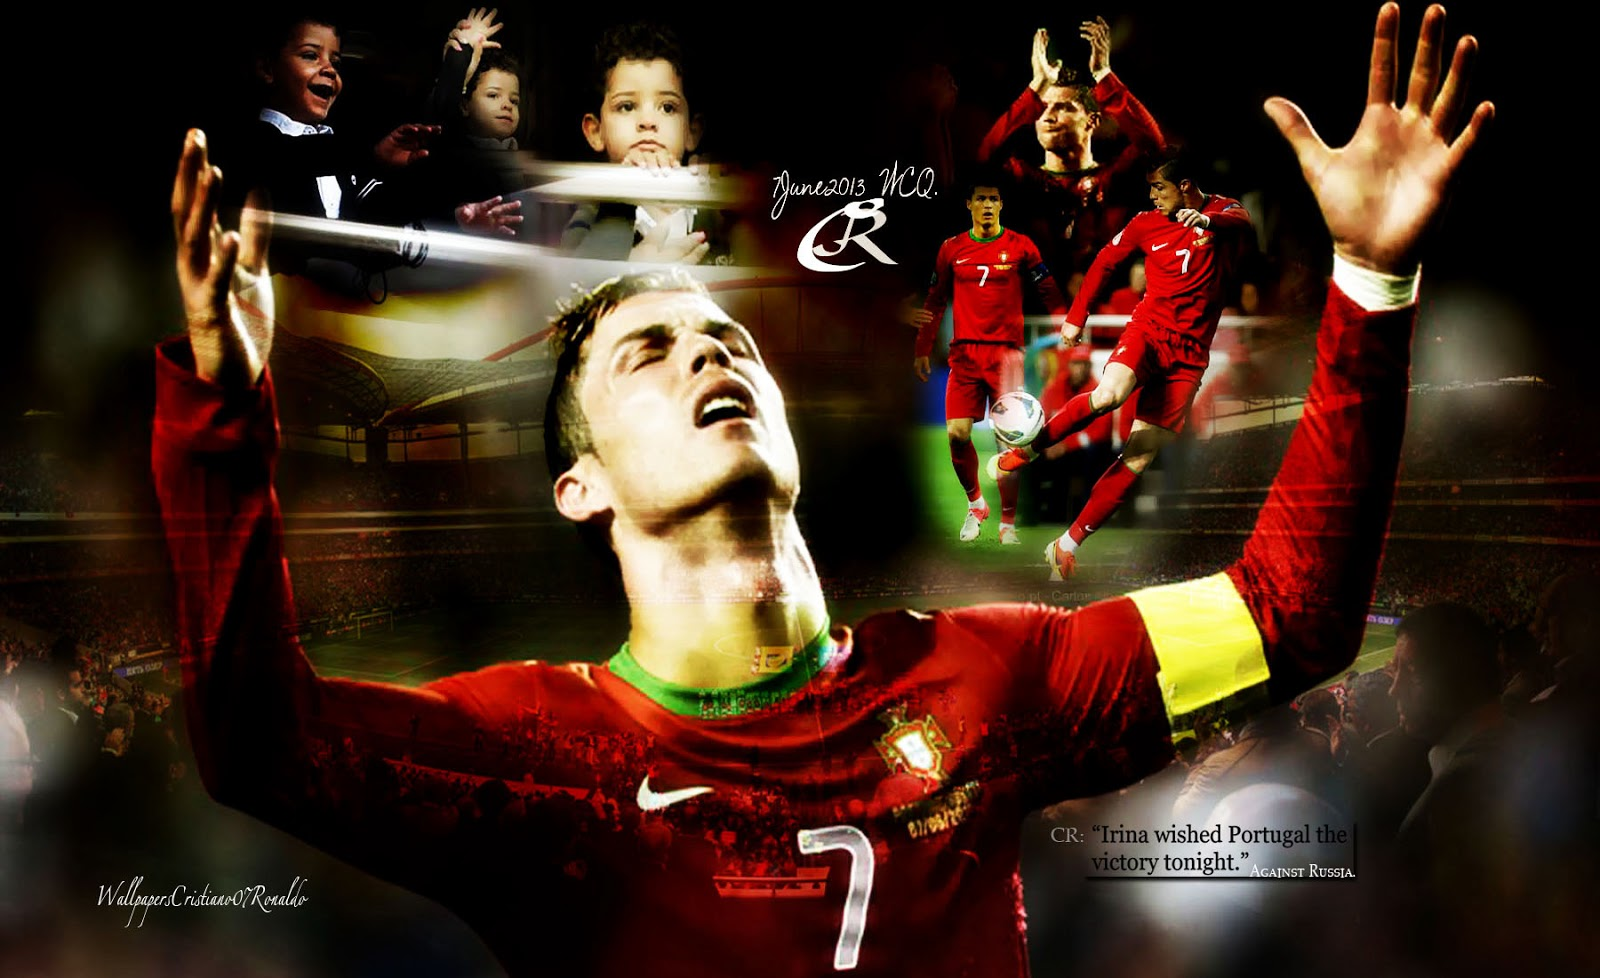 Captain Cristiano Ronaldo Cr Junior Wallpaper Portugal World Cup Qualification